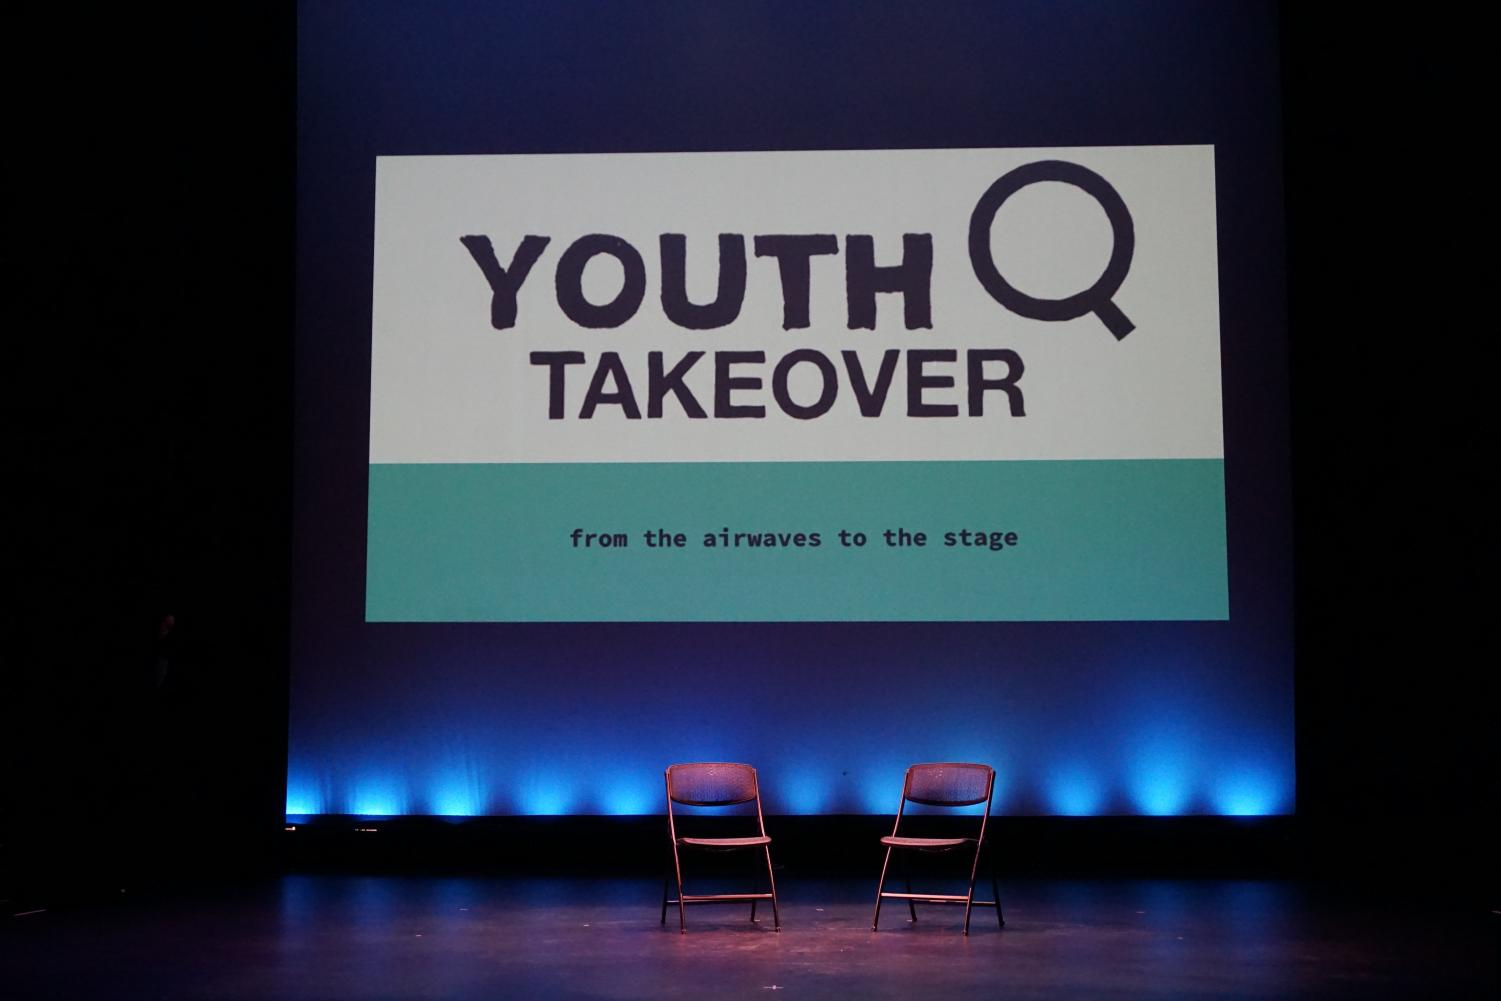 News site KQED hosts its first Youth Takeover.